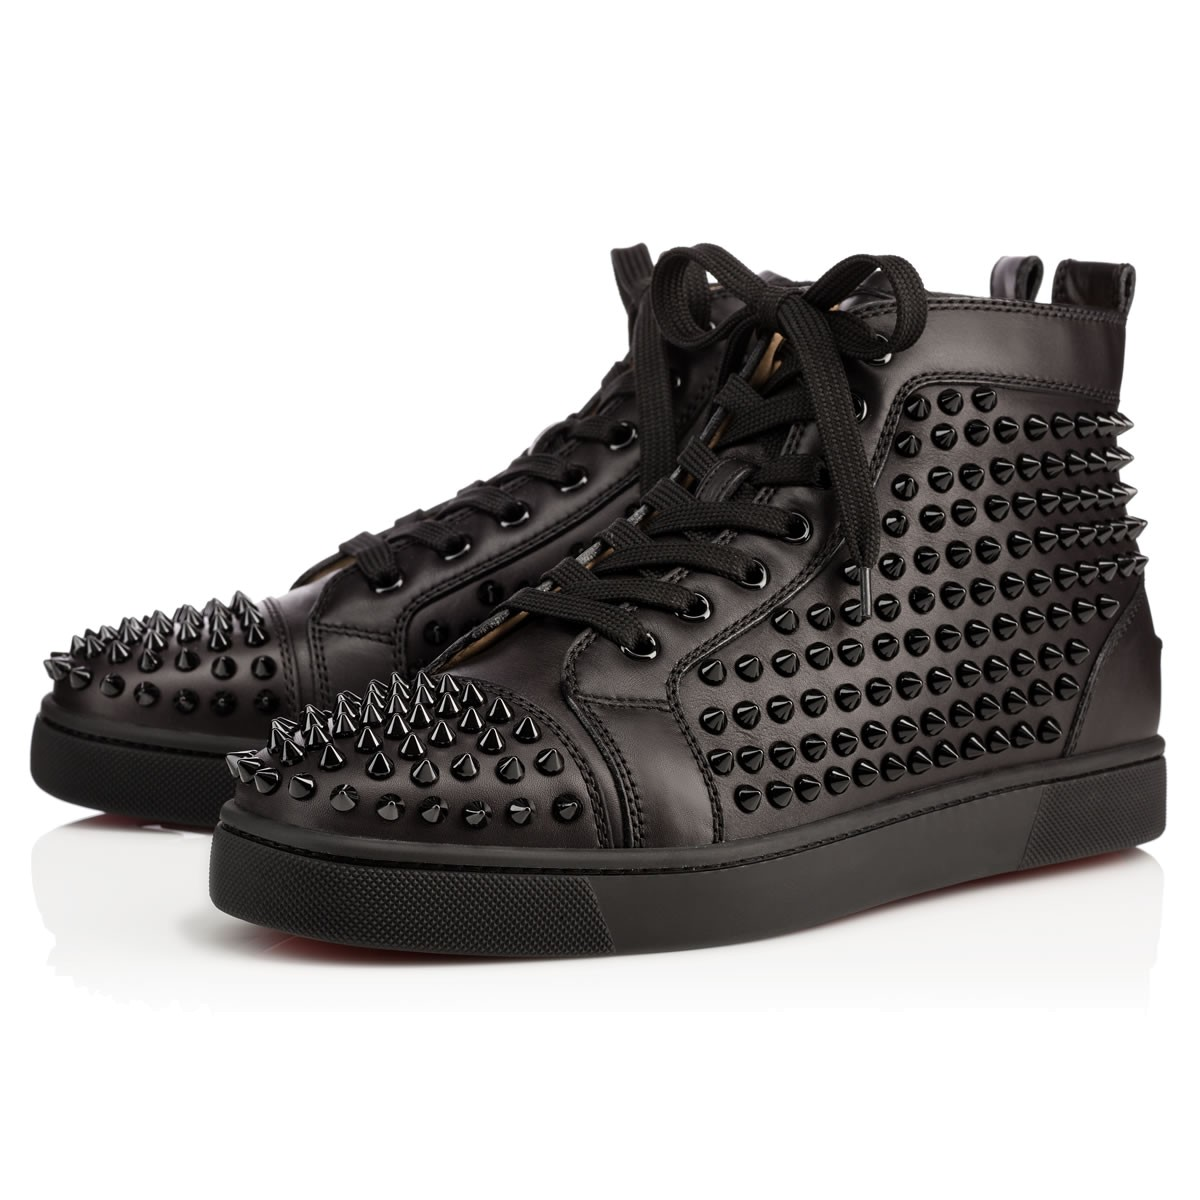 Christian Louboutin men shoes 039